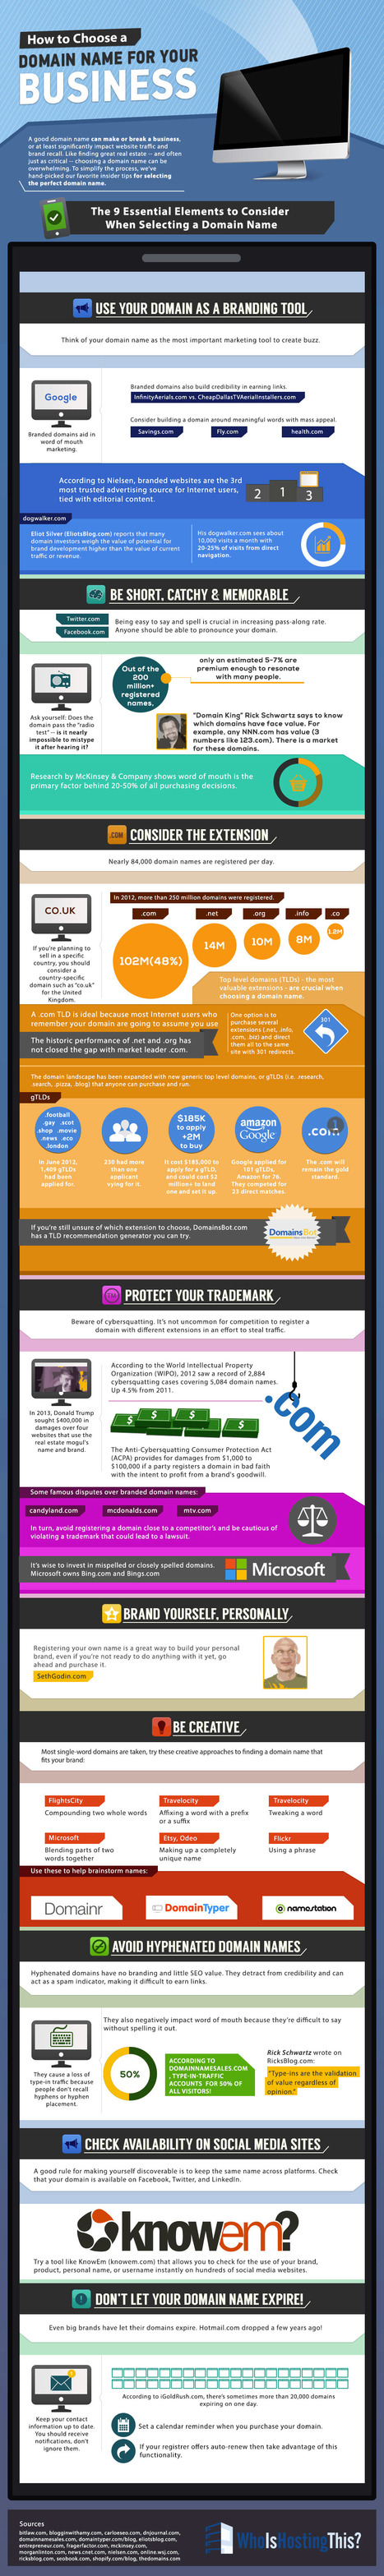 Why Choosing The Right Domain Name Is Important | Infographic | Marketingiri | Scoop.it